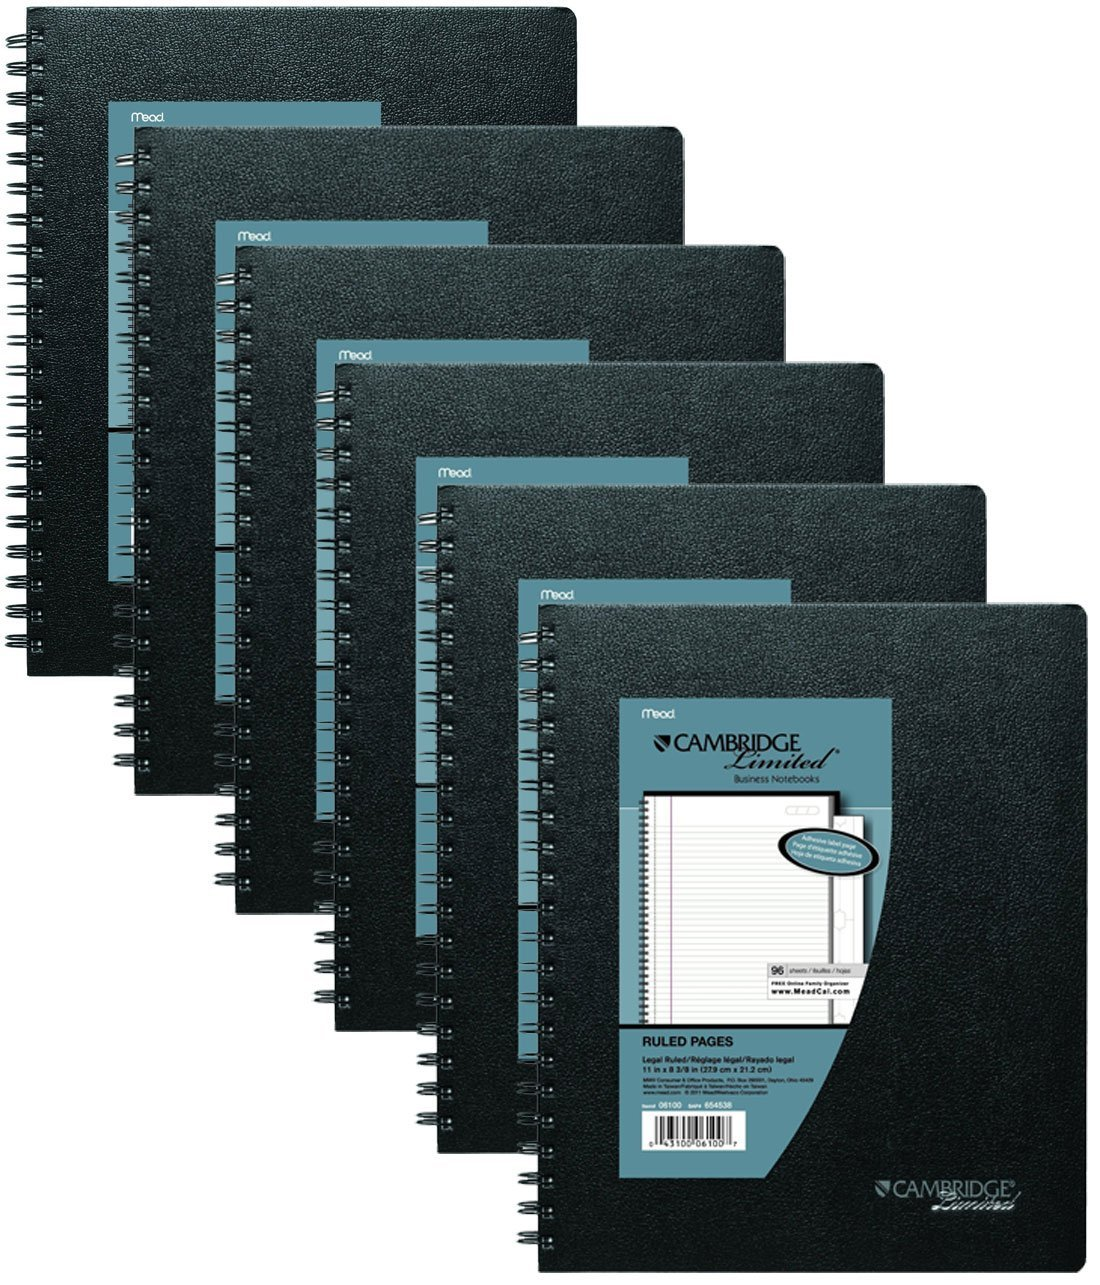 Mead Cambridge Business Notebook with Pocket, Hardbound, 8.25 x 11 Inches, Black, 6 Pack by Mead